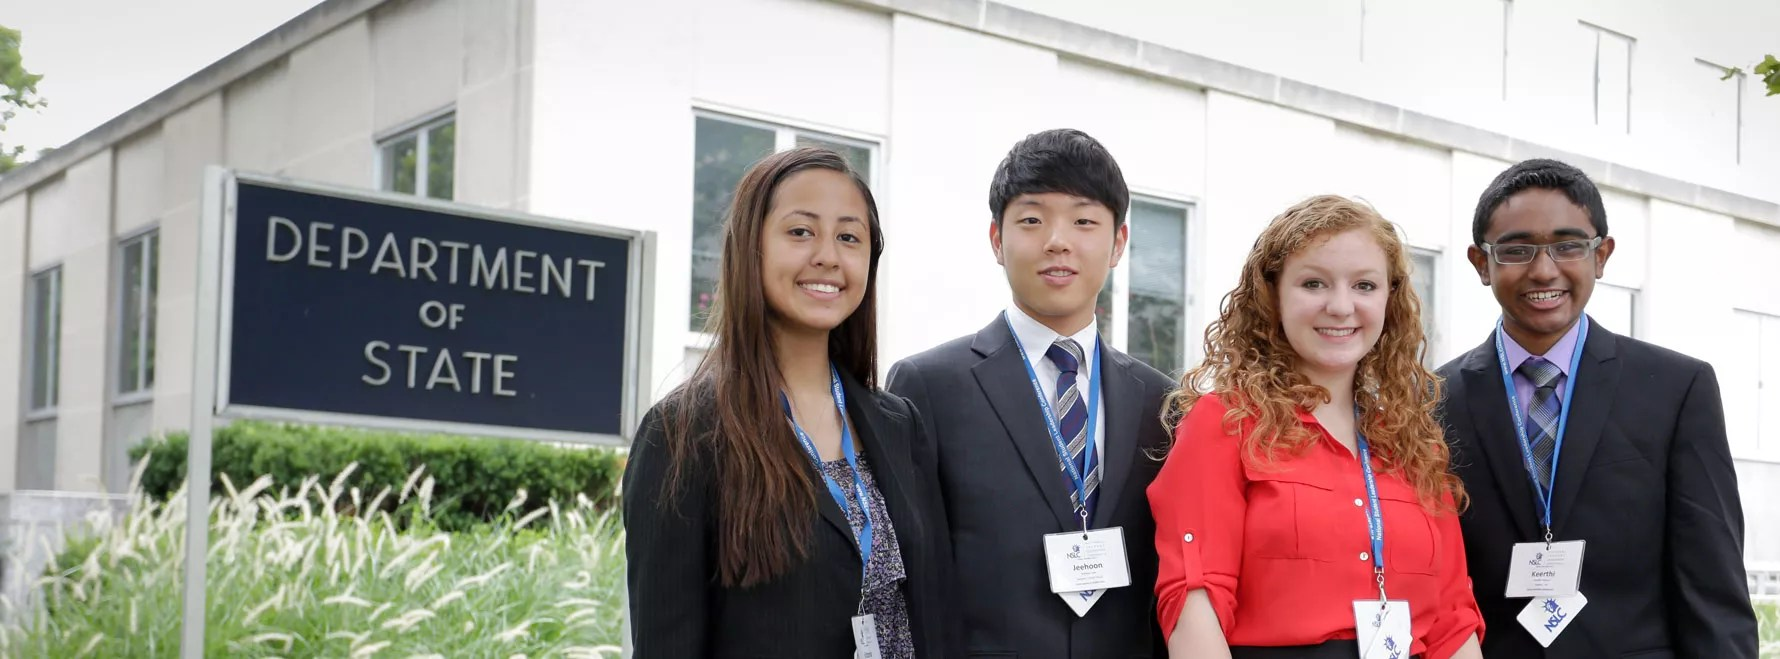 International Diplomacy Youth Leadership | National Student Leadership  Conference